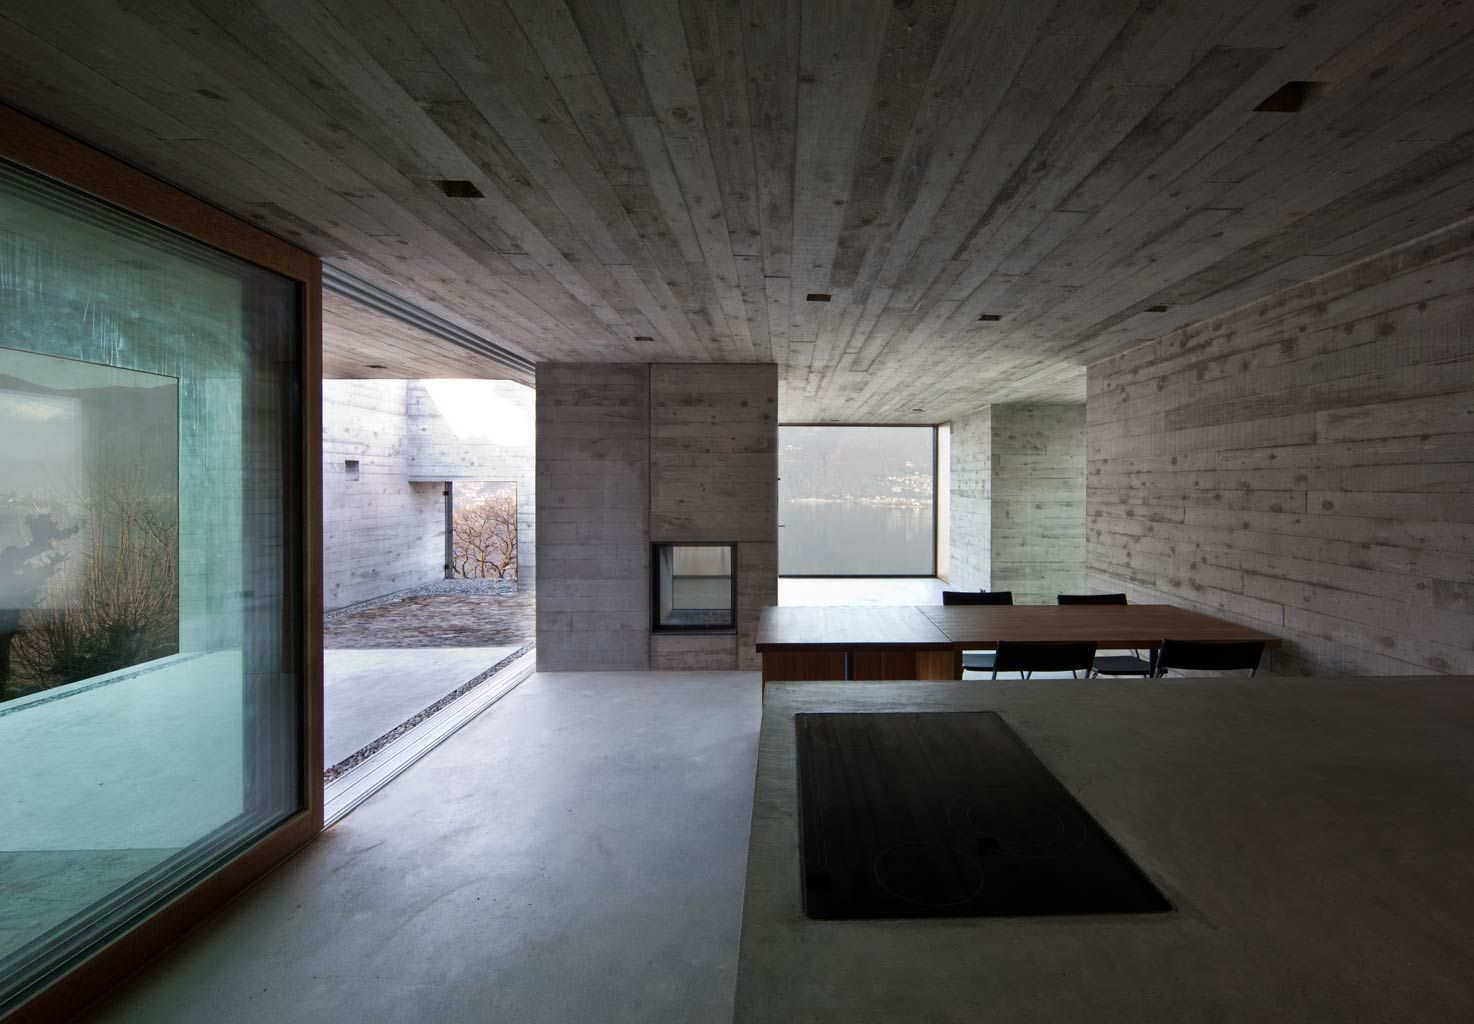 Wespi & de Meuron. House GR in S. Abbondio, Ticino, Switzerland. 2012. Photography Juan Rodriguez. Photo used on the cover of a.Mag02 magazine